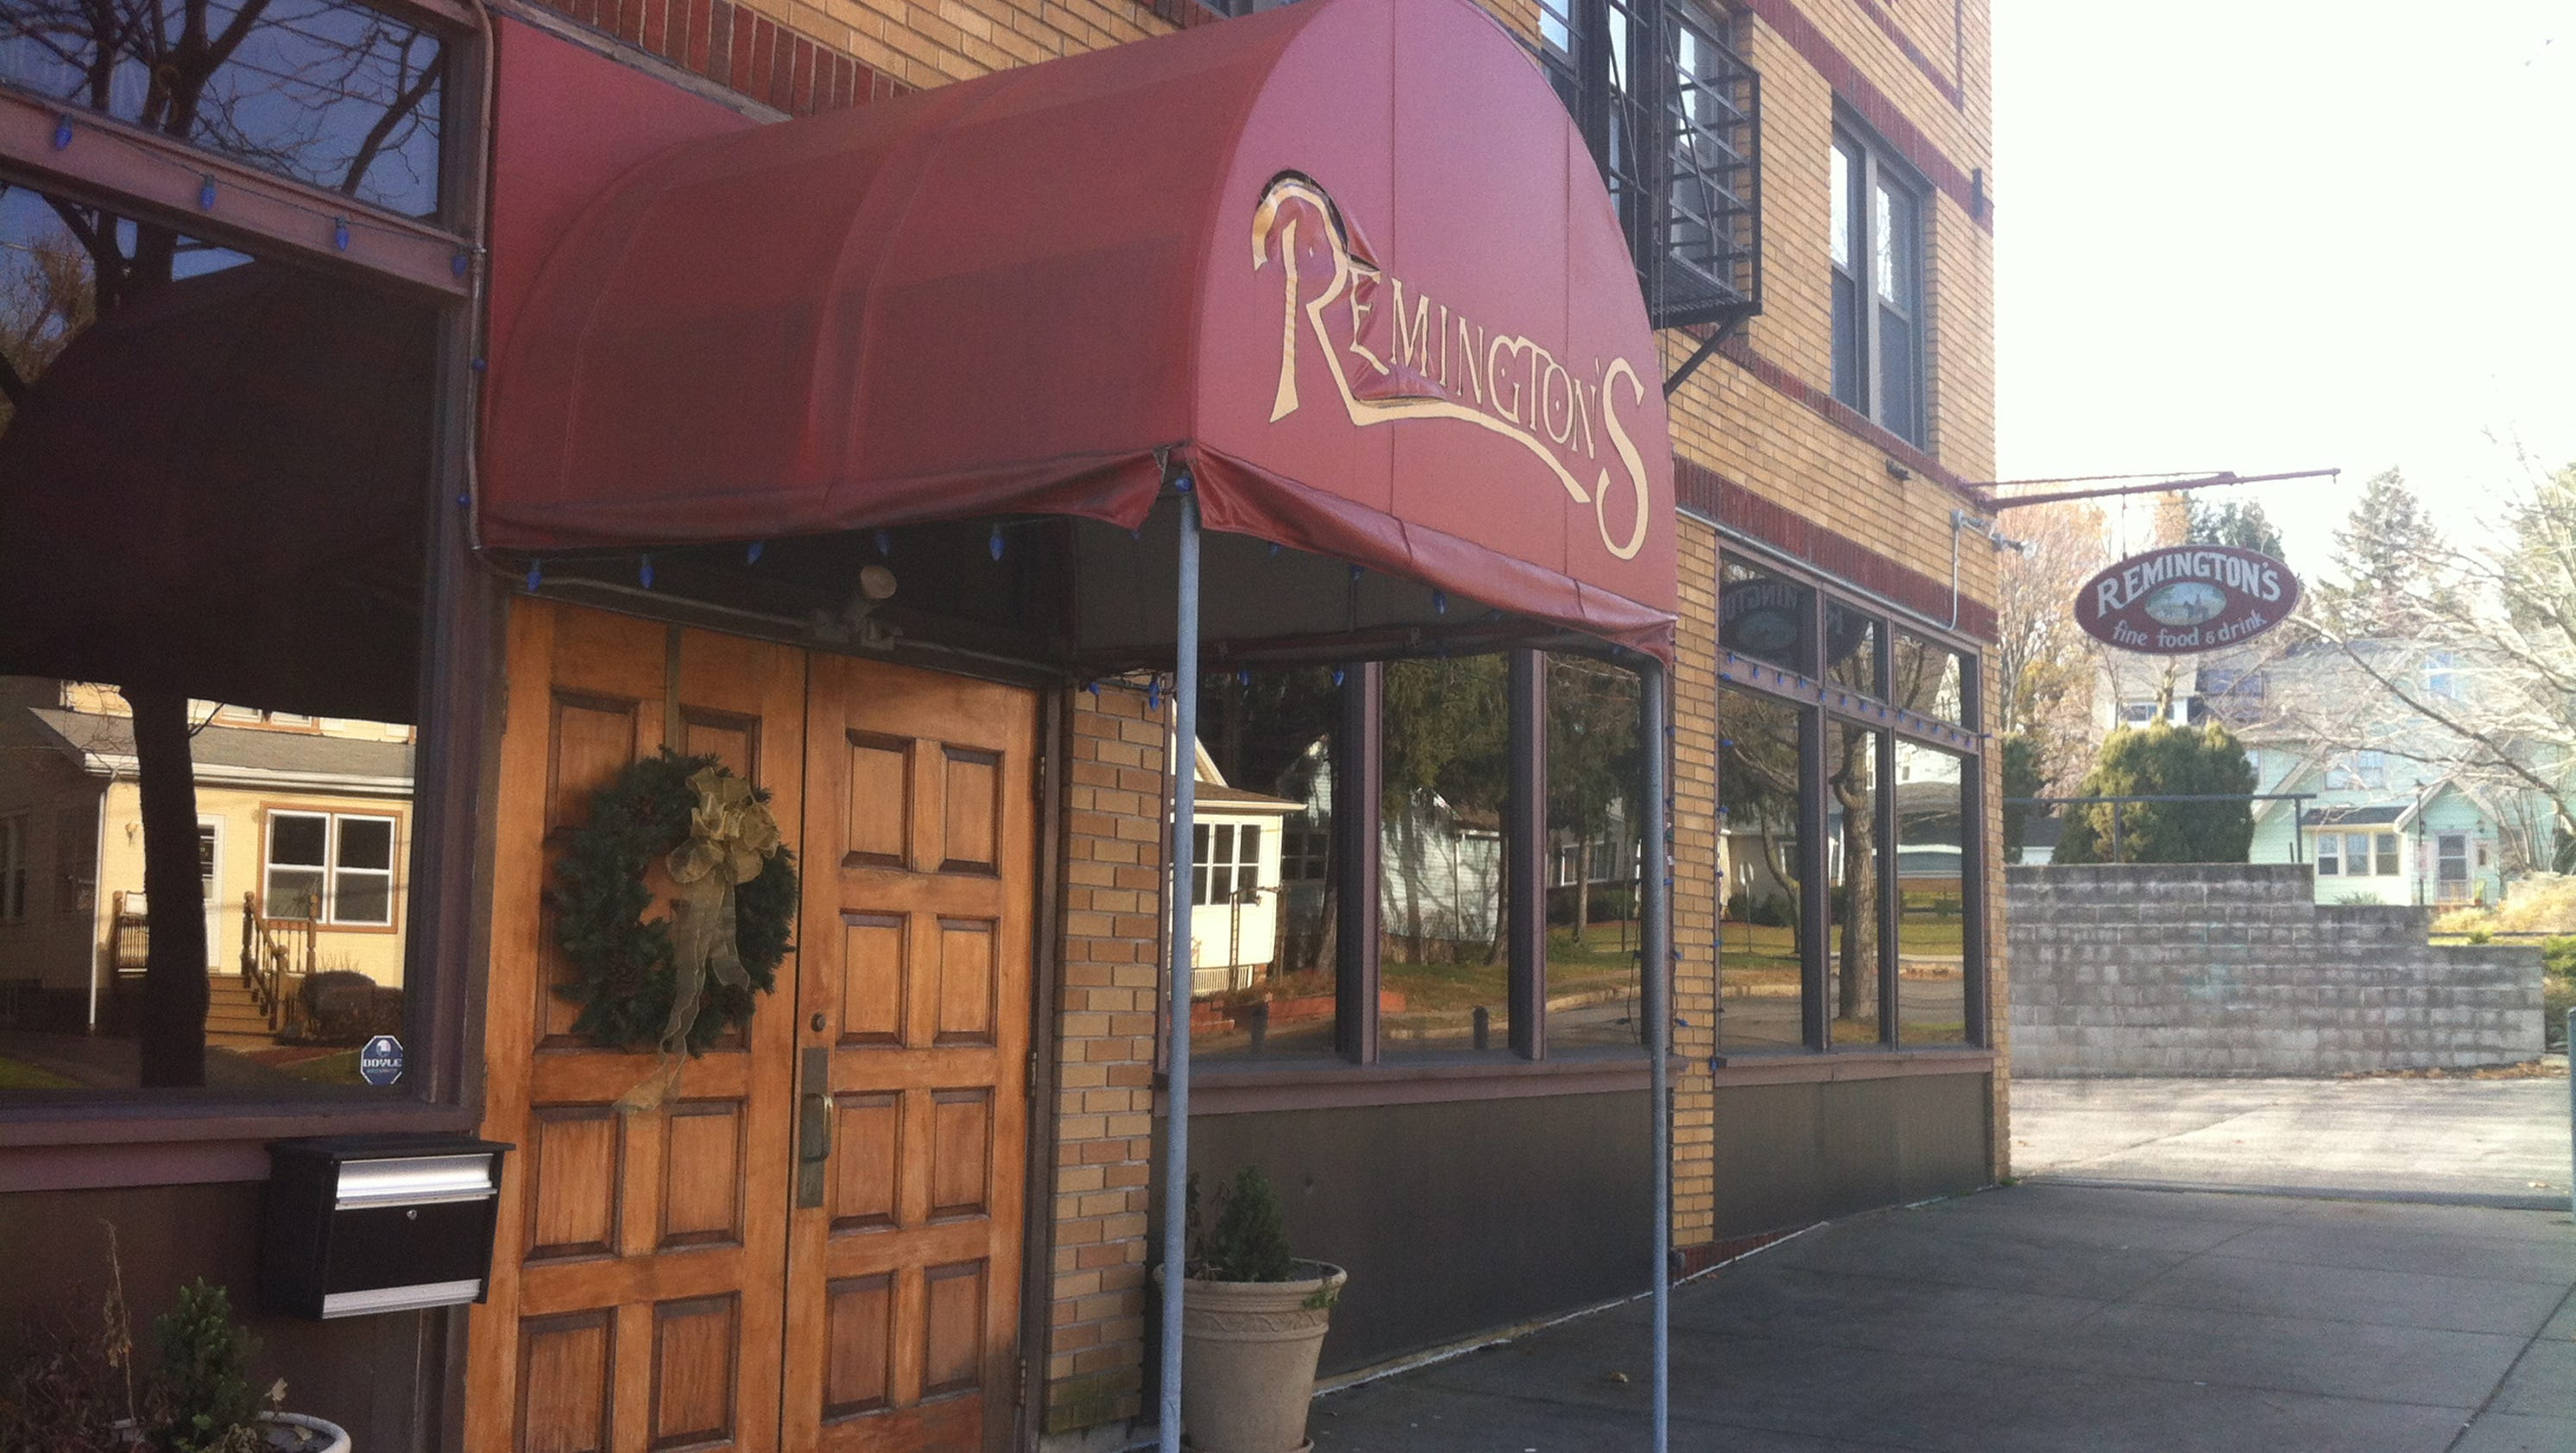 Remington S Restaurant